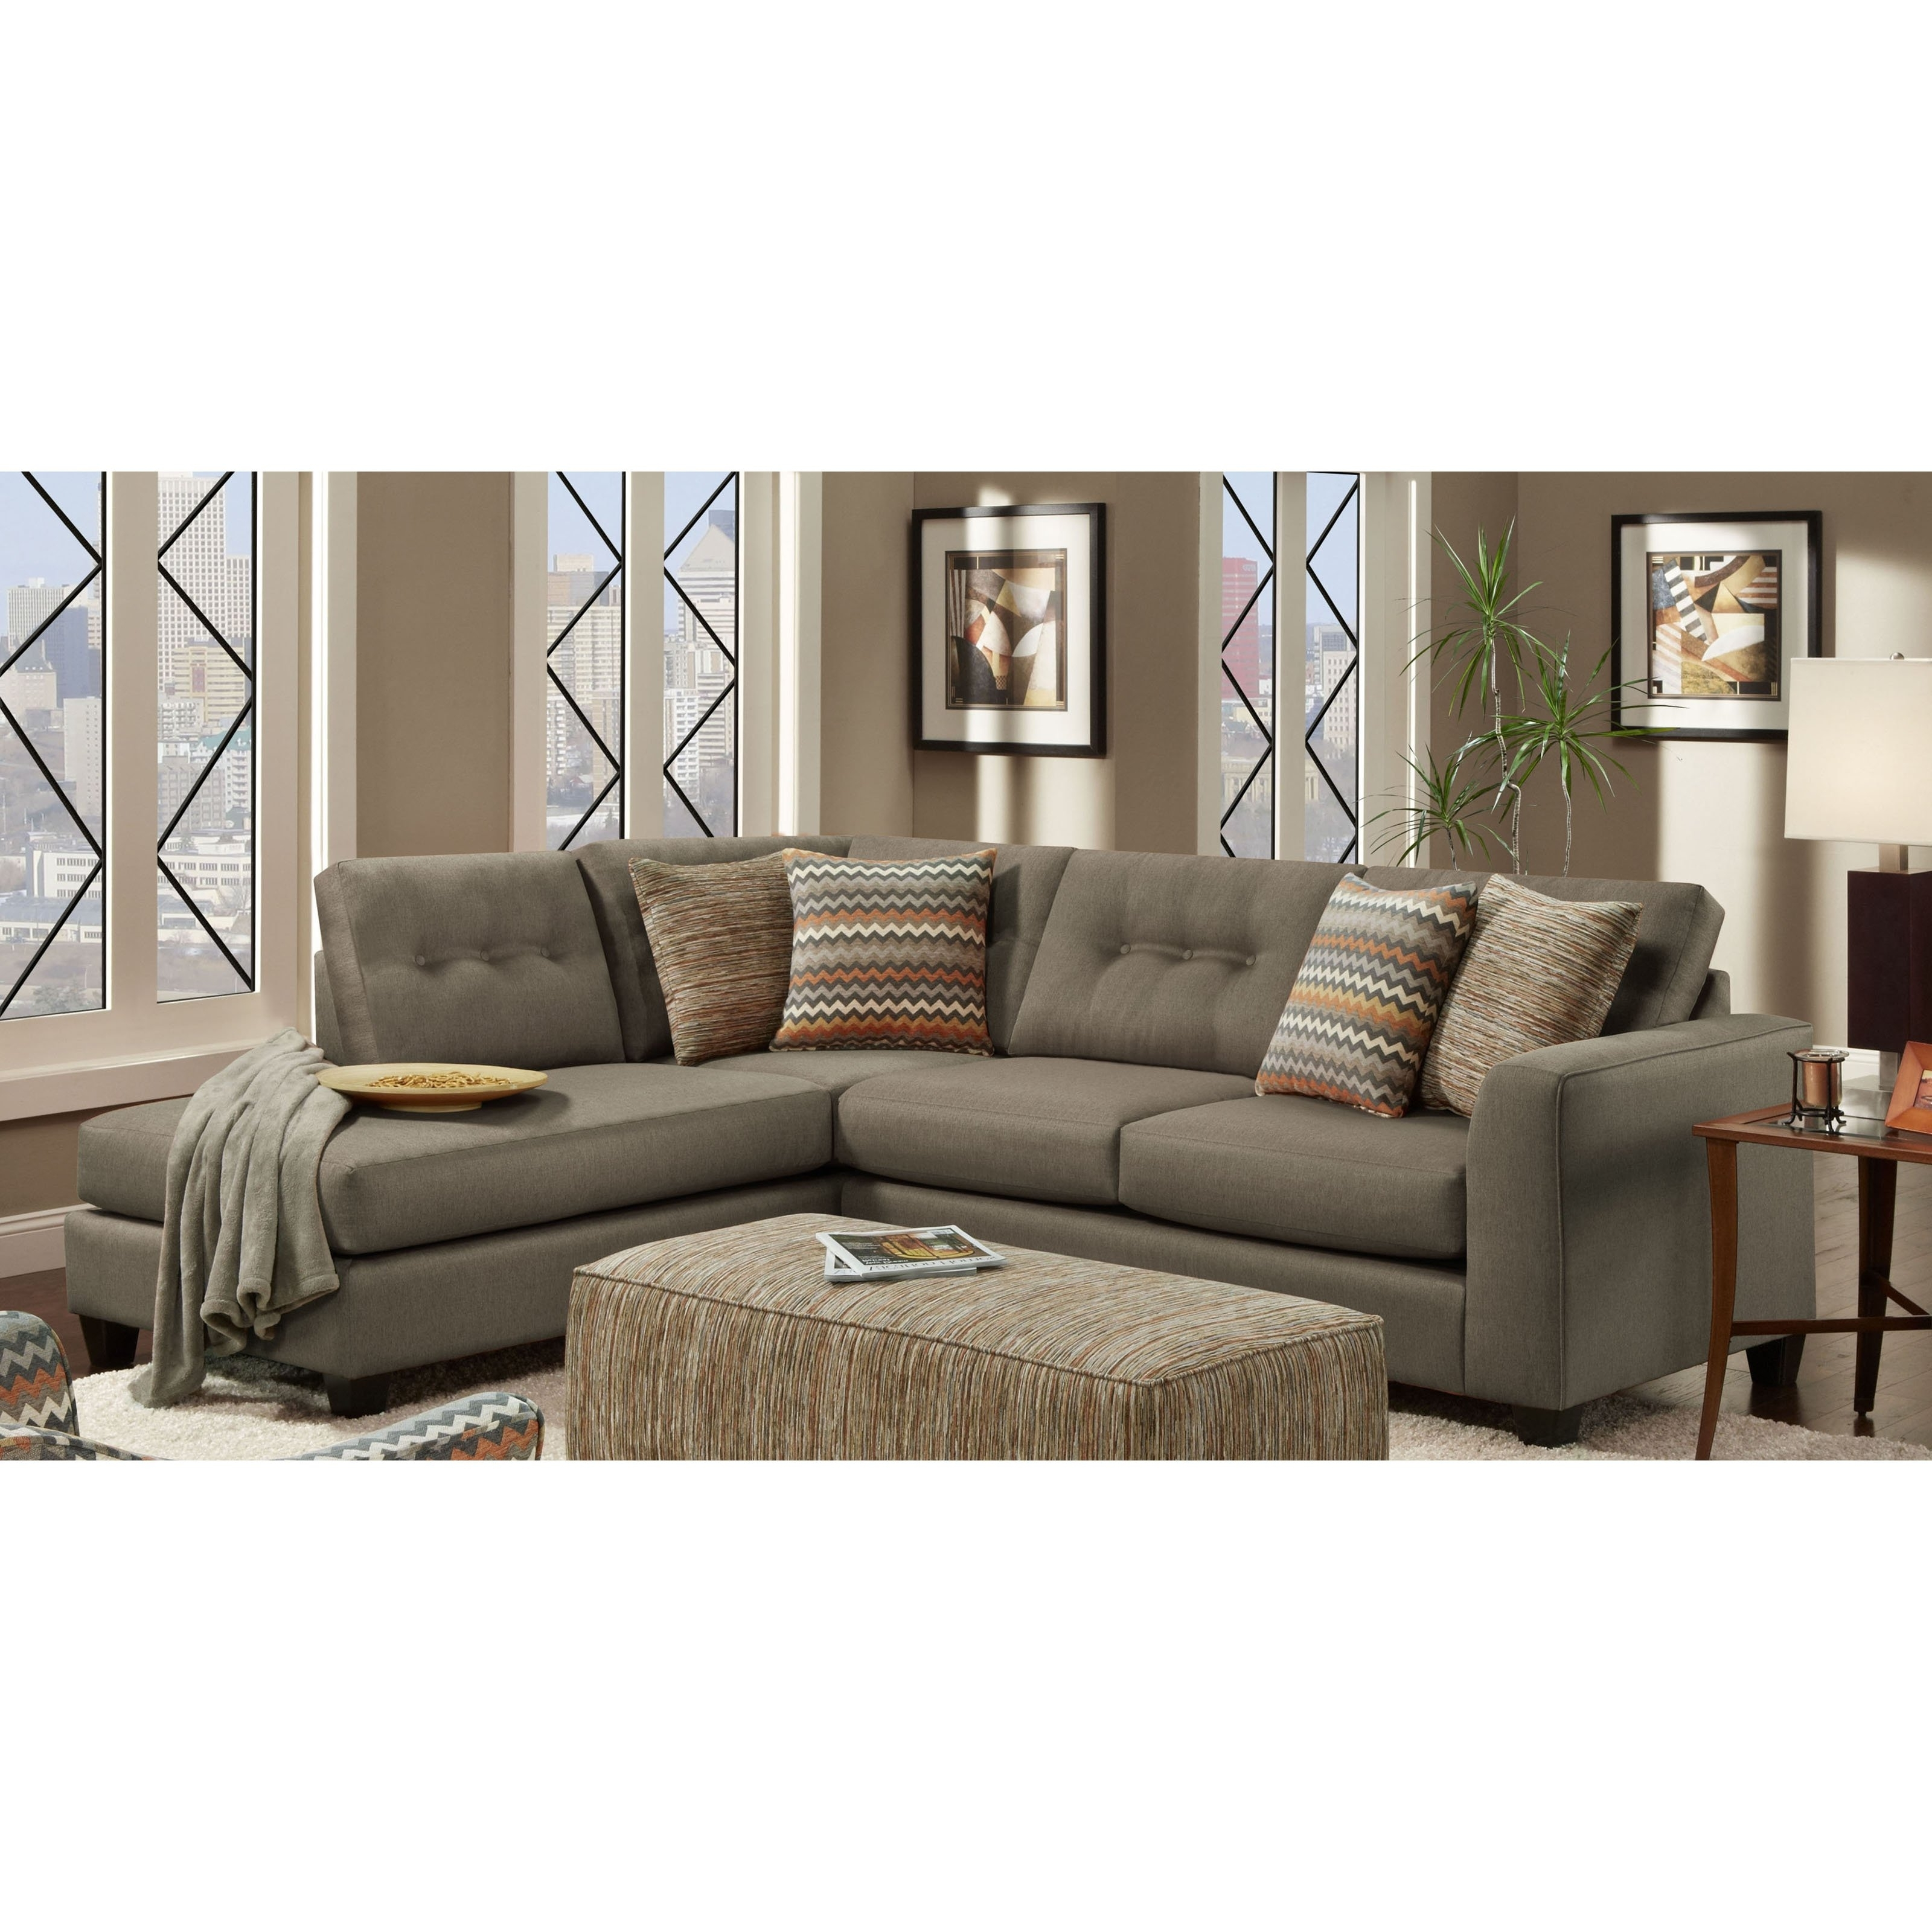 Best And Newest Phoenix Sectional Sofas Regarding Chelsea Home Furniture Phoenix Sectional Sofa – Walmart (View 2 of 15)